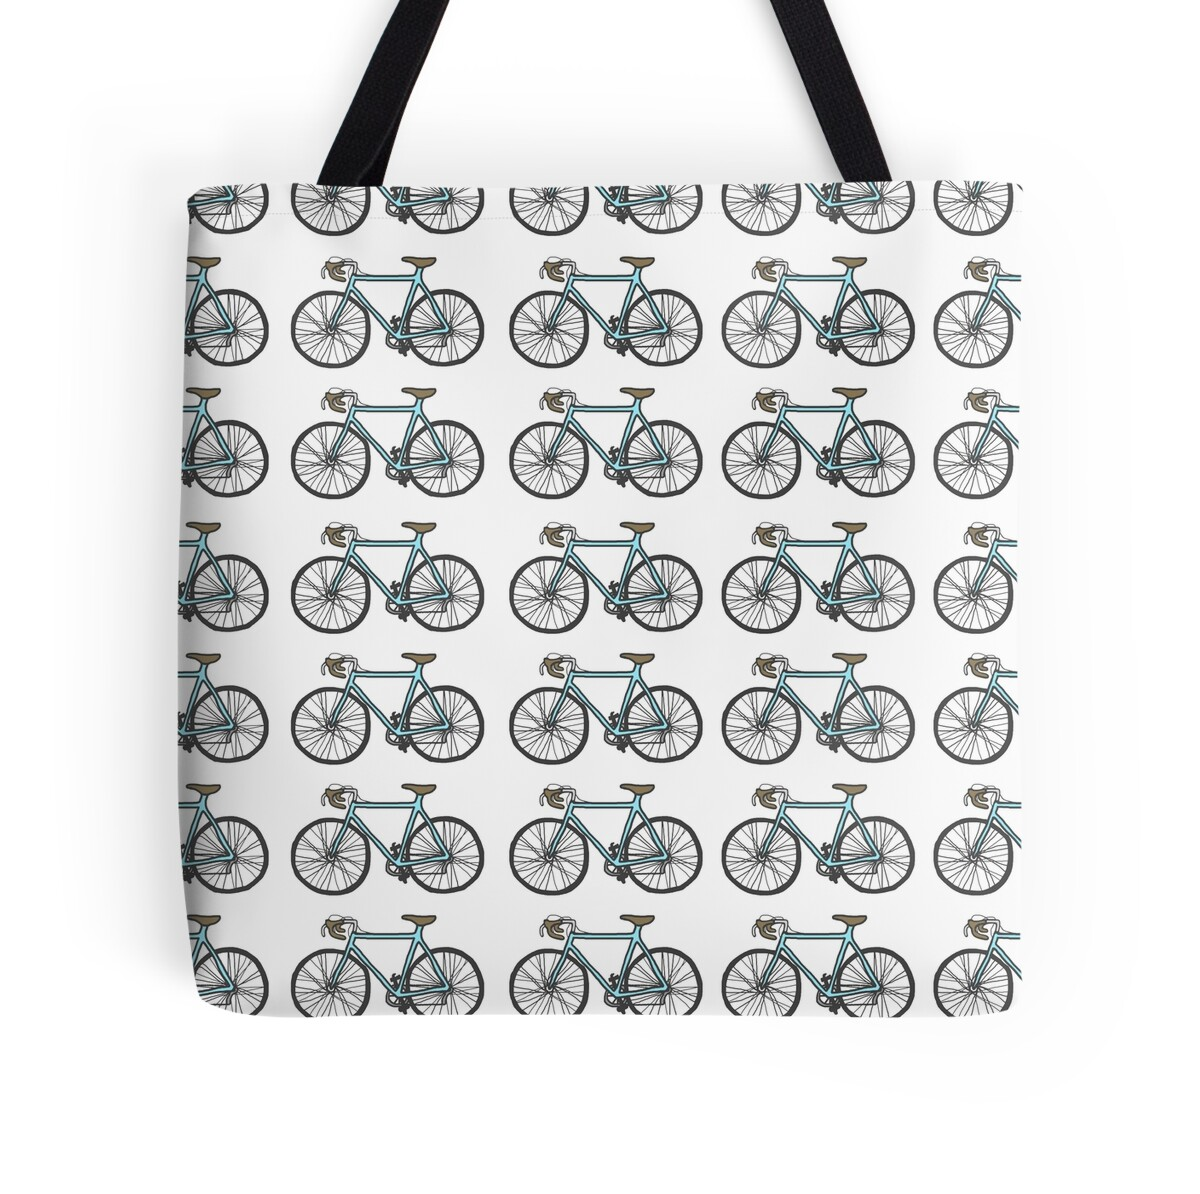 Tote bag drawing - Drawing Of A Bike Fixed Gear Wallpaper Design By Idrawthings